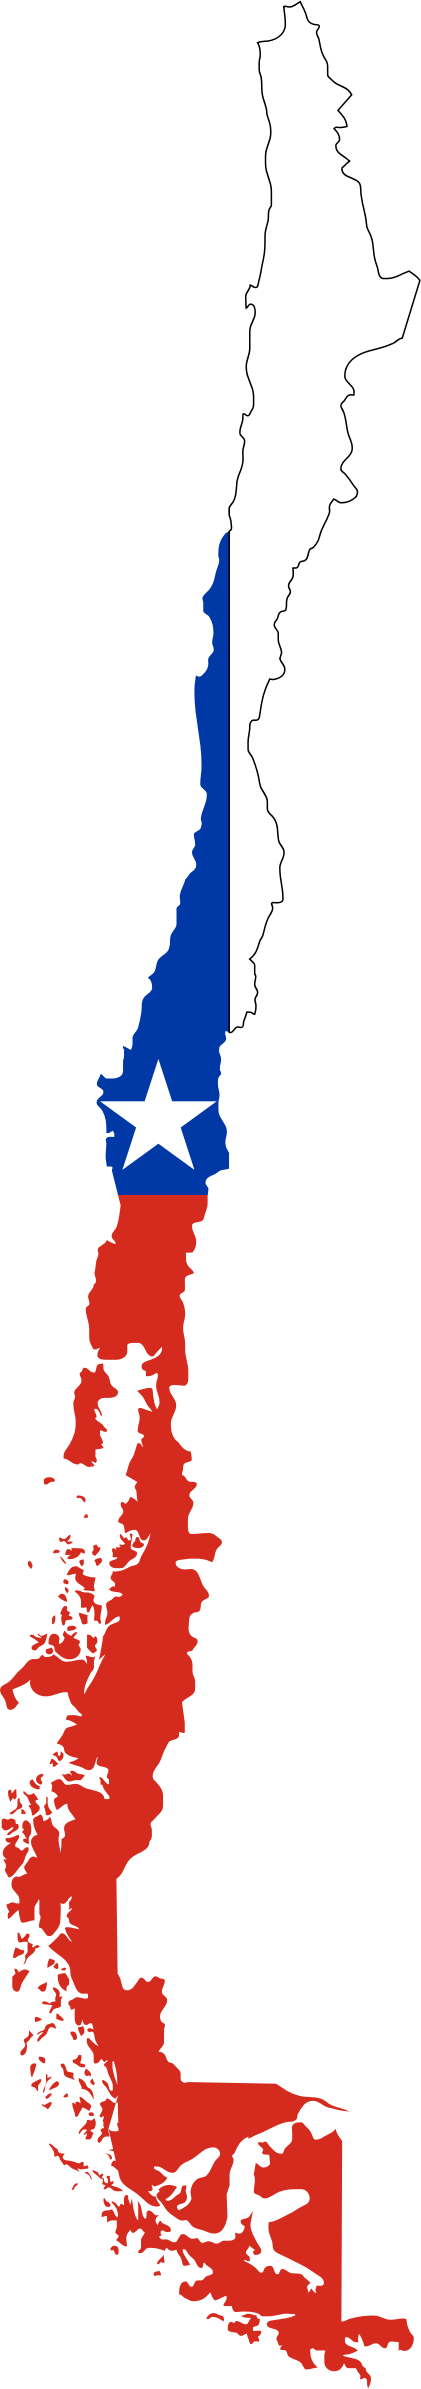 BIG IMAGE (PNG) - Chile PNG